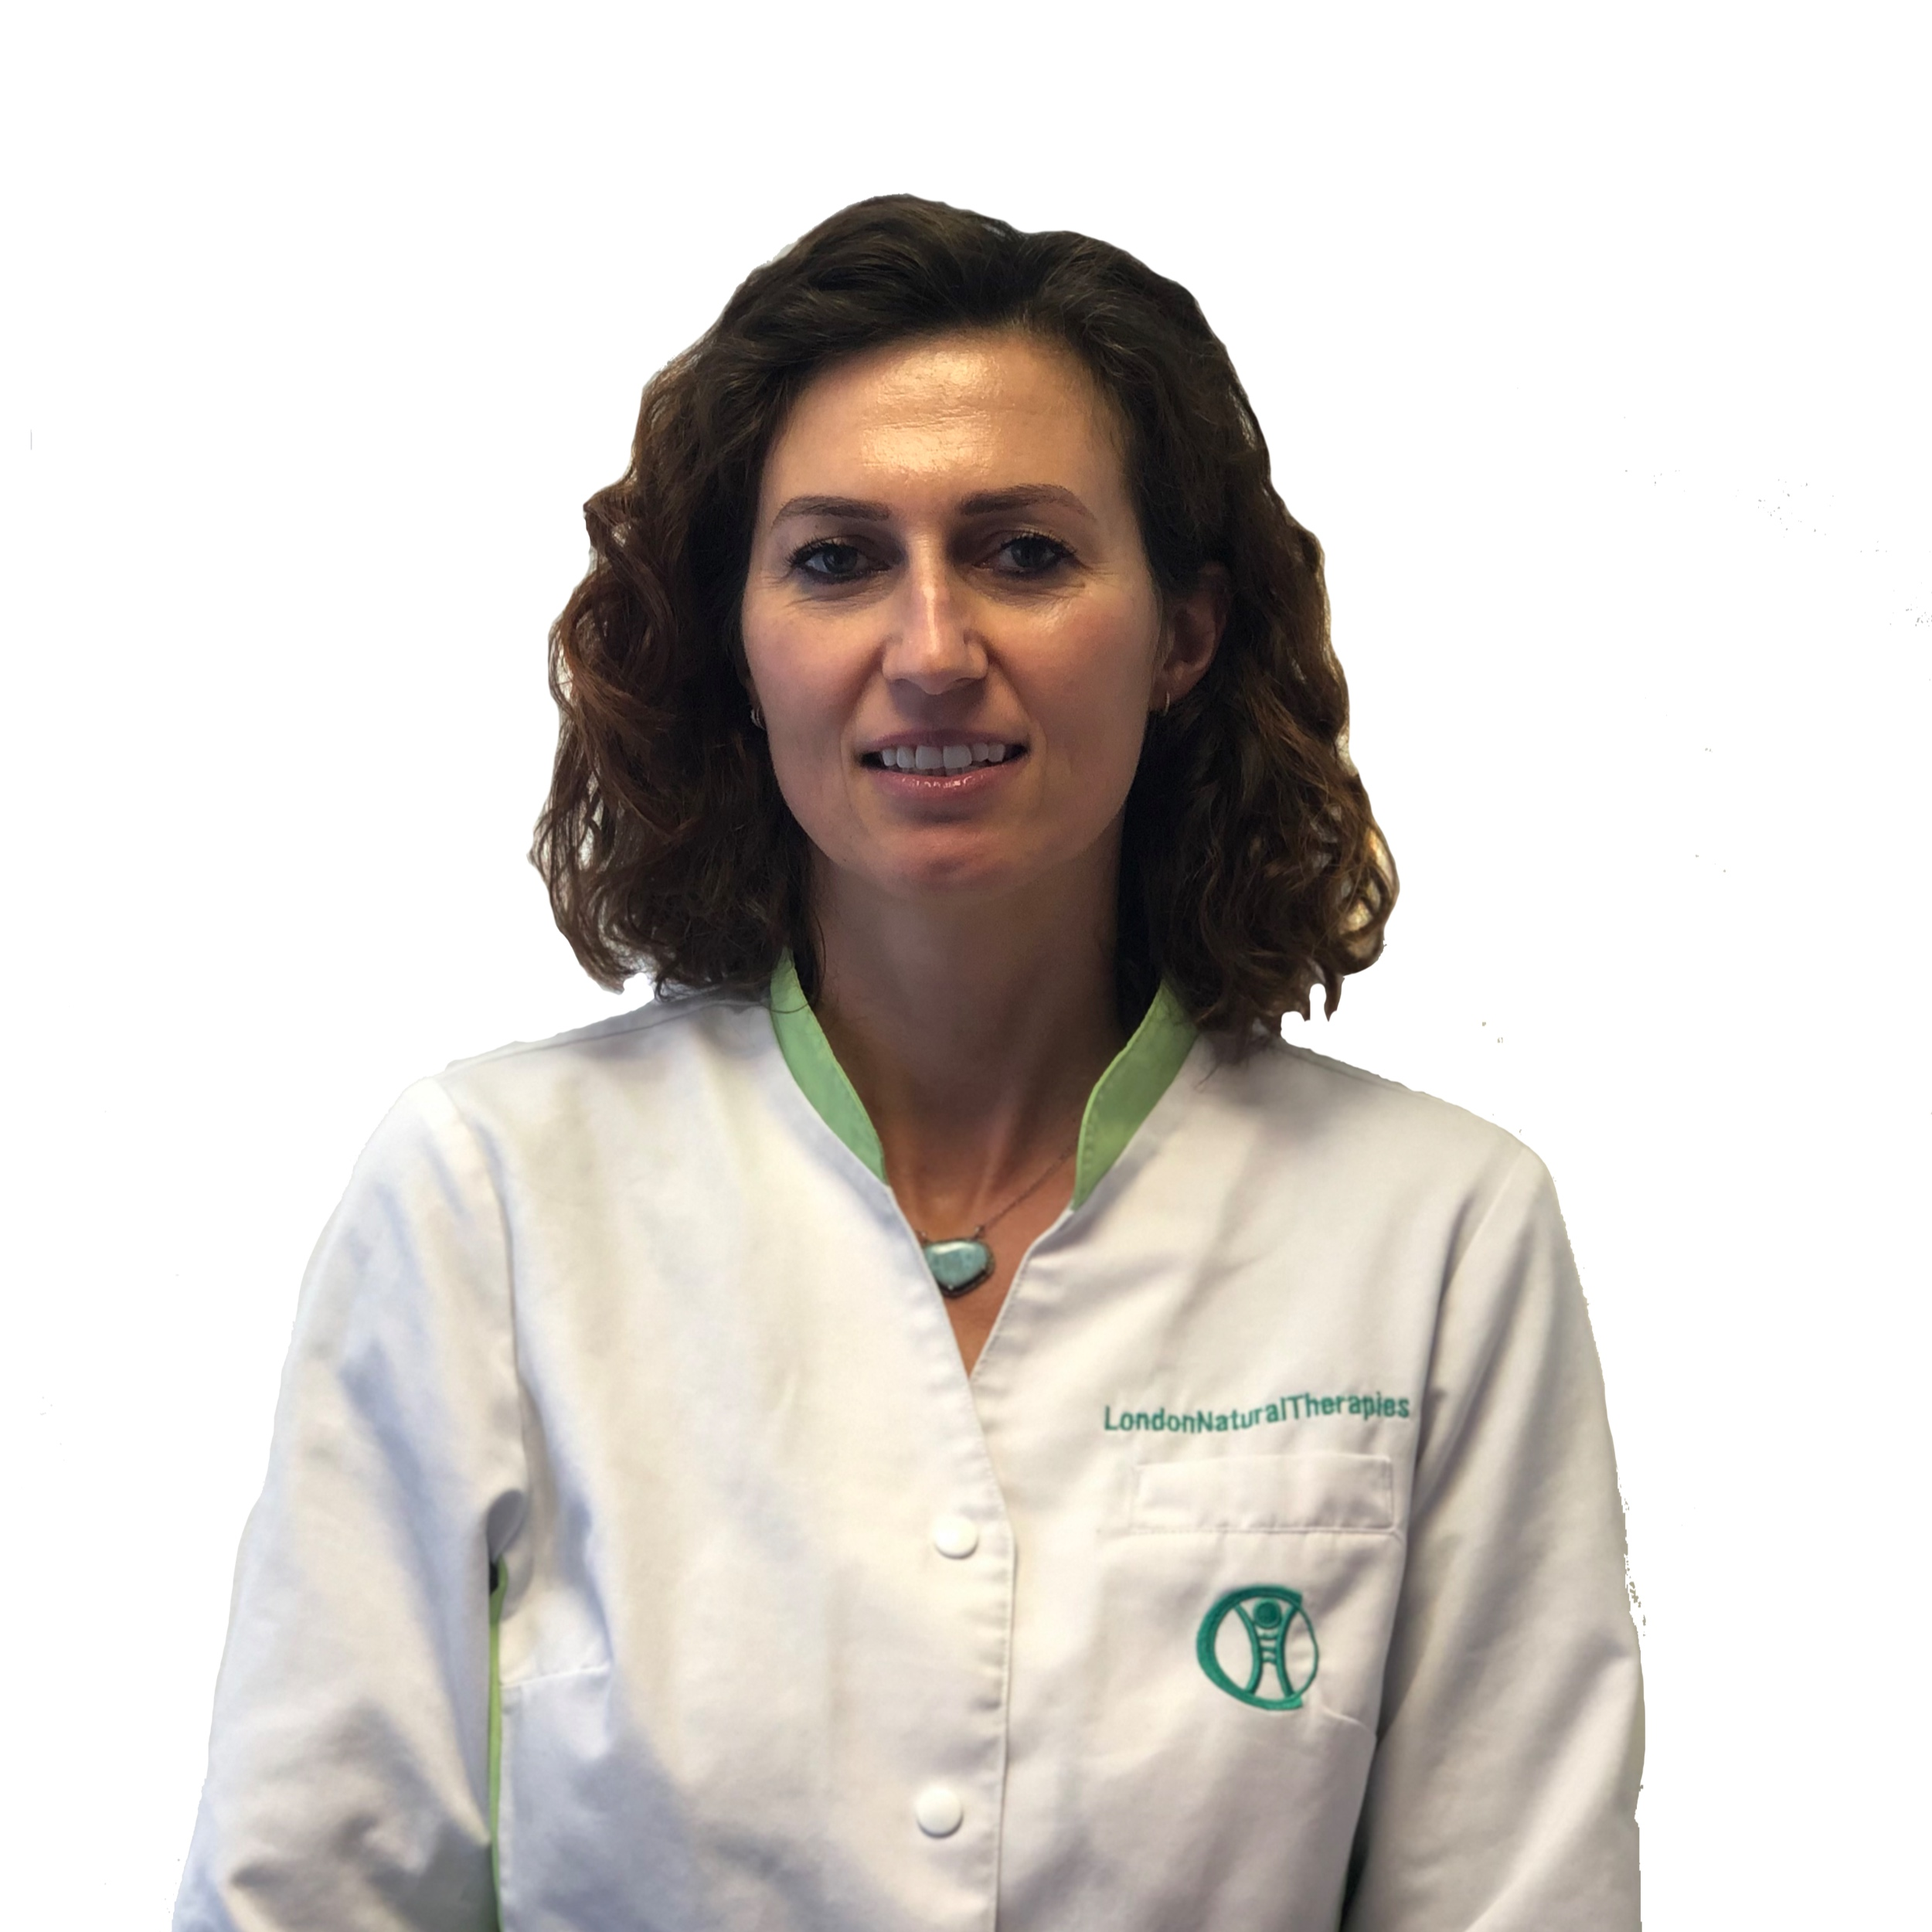 Katrin Hempel - AcupunctureBio-resonanceInfusion Therapy and Vitamin InjectionsNaturopathyNutritionNutrition and NaturopathyOzone TherapySkincareSports Massage/MedicineVitamin B12 InjectionsWeightlossMonday 11.30pm - 3.30pmTuesday 8.30am – 6.30pmThursday 10.30am – 7.30pm(other times available on request)Bioresonance £550.00 120 minutes Biopuncture £120.00Infusion Therapy between £195.00 - £270.00Mesotherapy for Hair Loss £175.00Vitamin B12 injections (1mg) £35.00Vitamin B12 injections (5mg) £55.00Non surgical Facelift / Aesthetic Mesotherapy £175.00Sanguinum Weight Loss (per session) £60.00Live Blood Analysis with Full Naturopathic Assessment £250.00Live and Dry Blood Analysis - Special (A more comprehensive testing over 3 days (may be useful in chronic and degenerative conditions - please ask for details) £350.00Cellulite Mesotherapy £150.00Local Fat Reduction £350.00